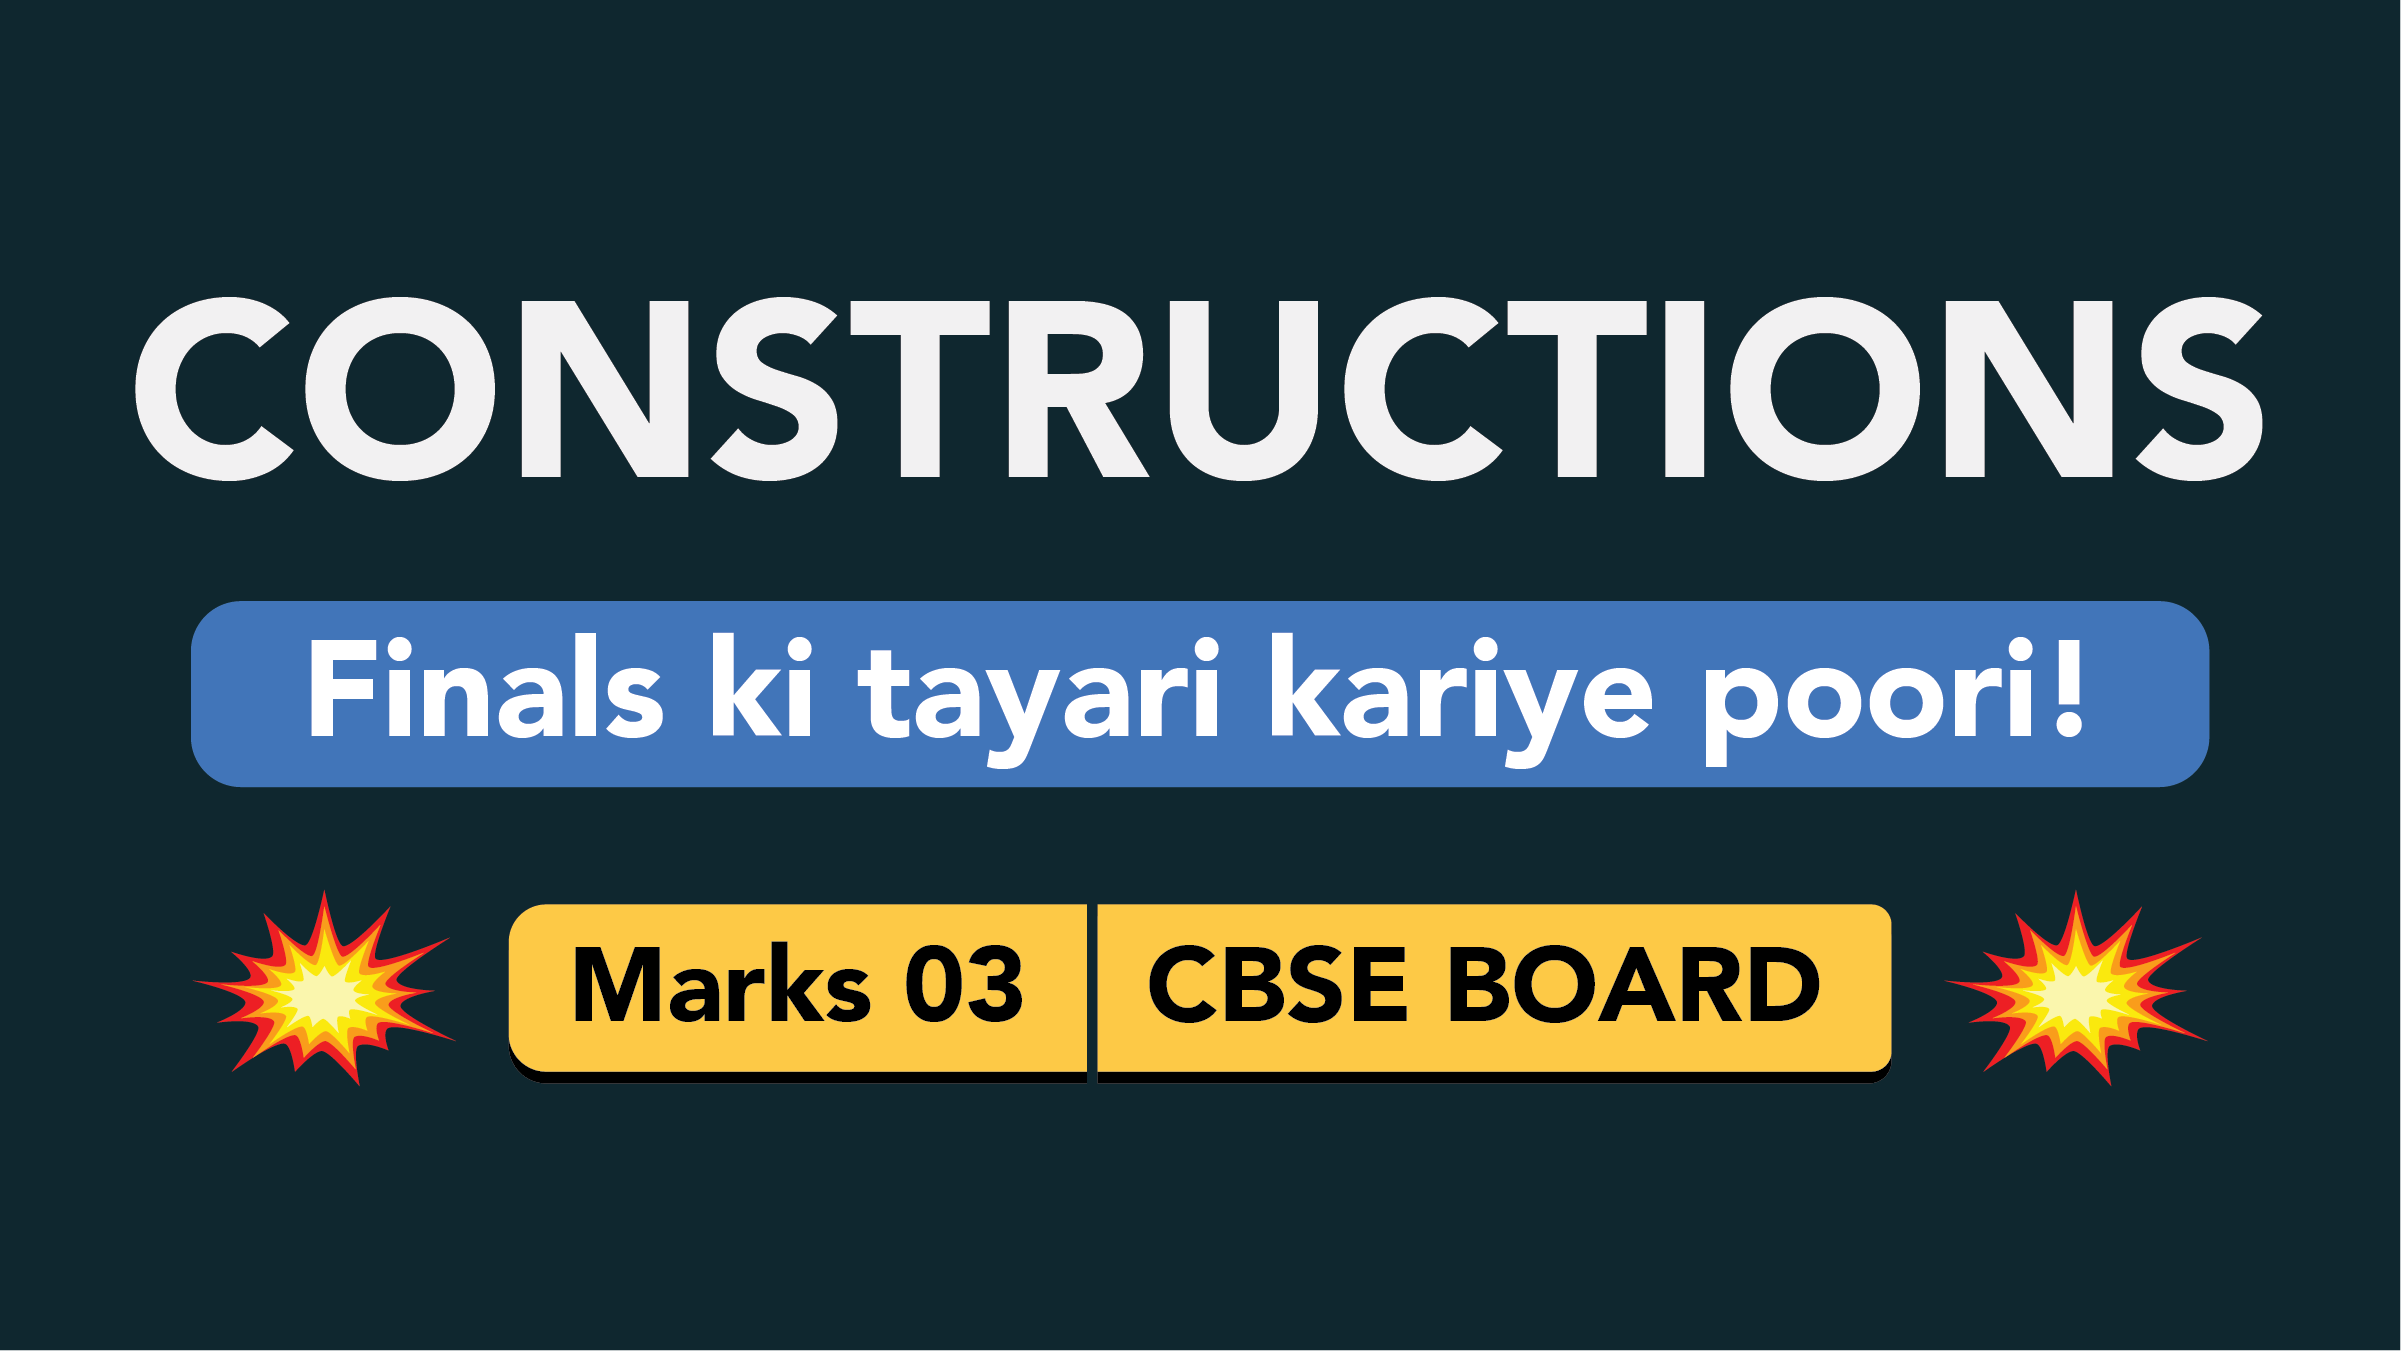 CBSE Board Class 9 CONSTRUCTIONS || Weightage and Important Topics